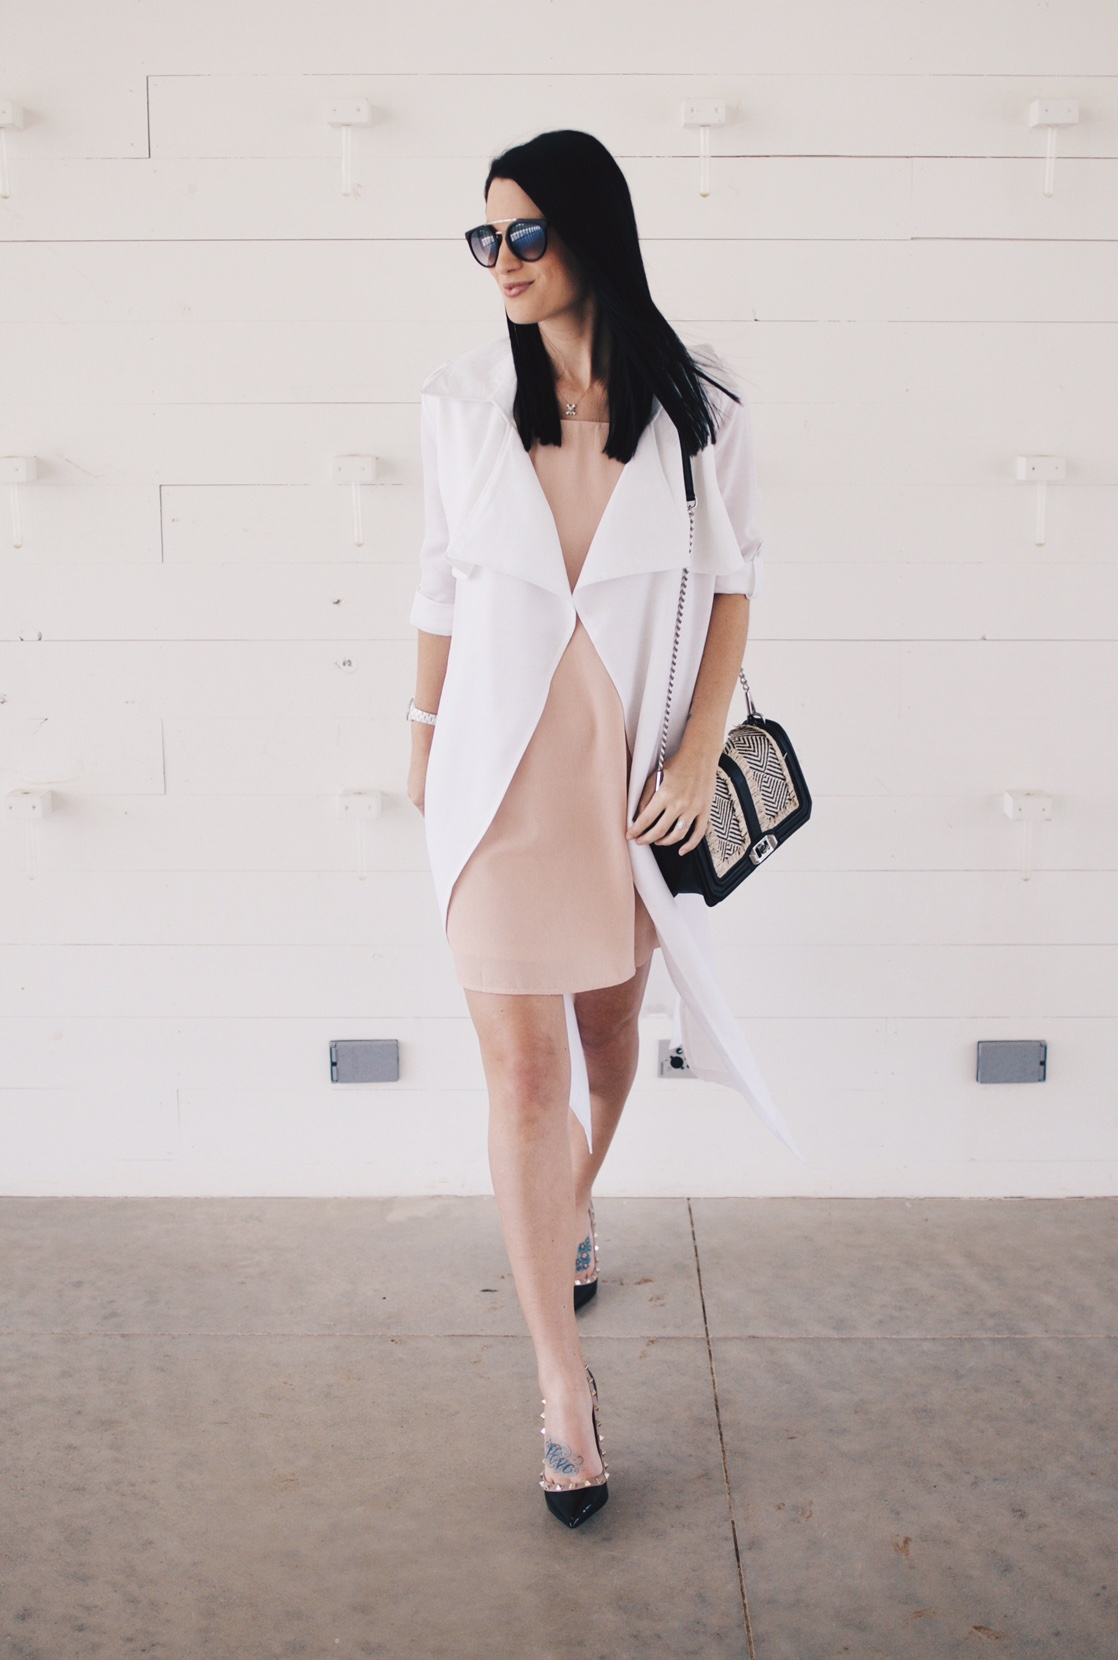 Blush Pink Dress | summer fashion tips | summer outfit ideas | summer style tips | what to wear for summer | warm weather fashion | fashion for summer | style tips for summer | outfit ideas for summer || Dressed to Kill